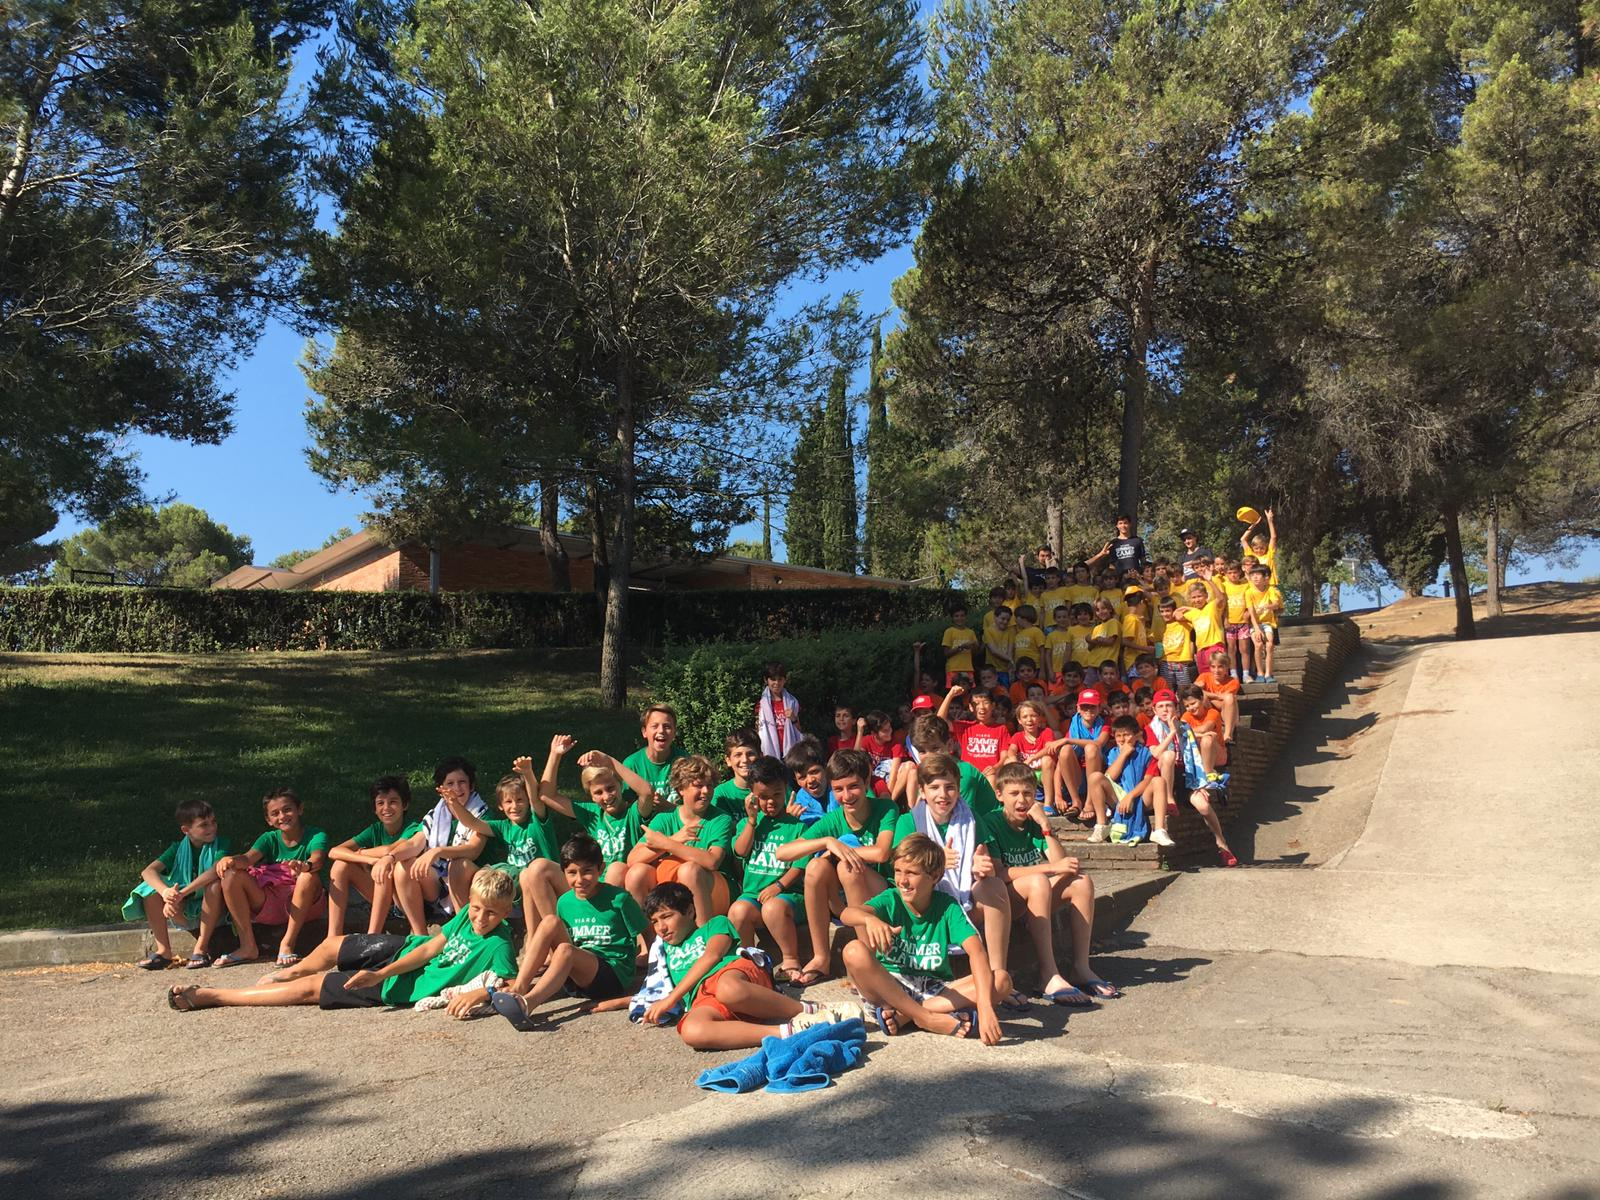 Summer Camp 2: What's happening?